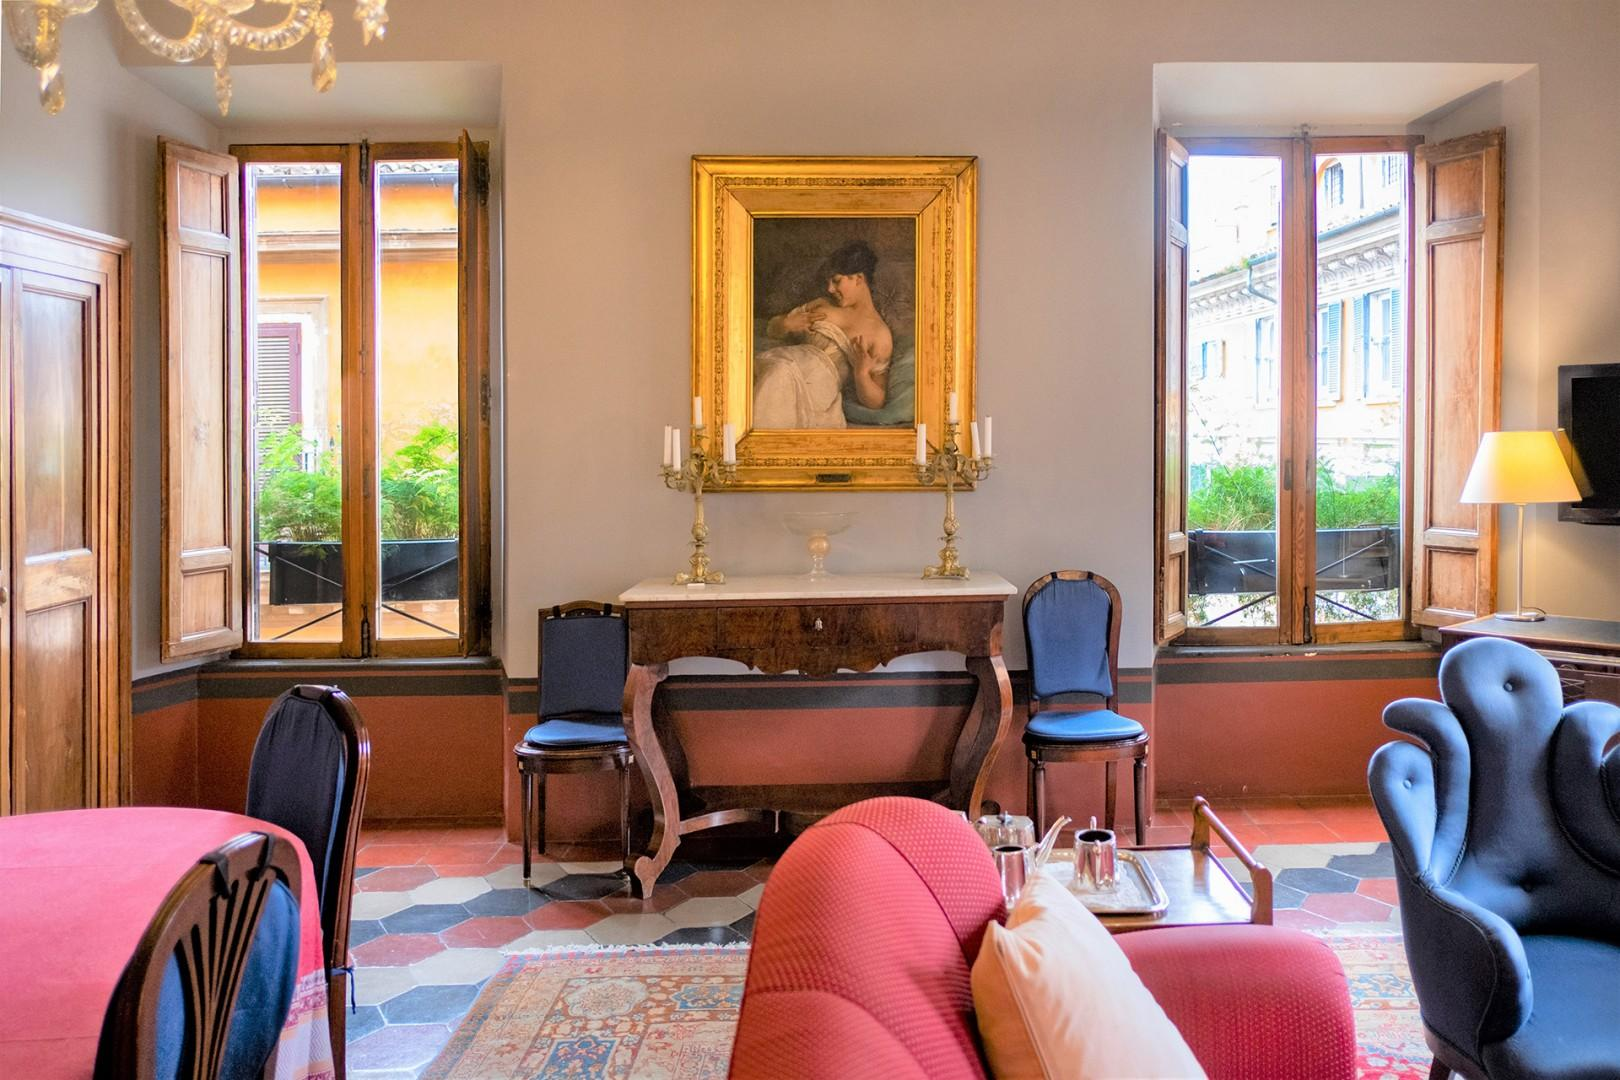 There are many beautiful antiques and fine paintings from the owner's ancestral home in Puglia.